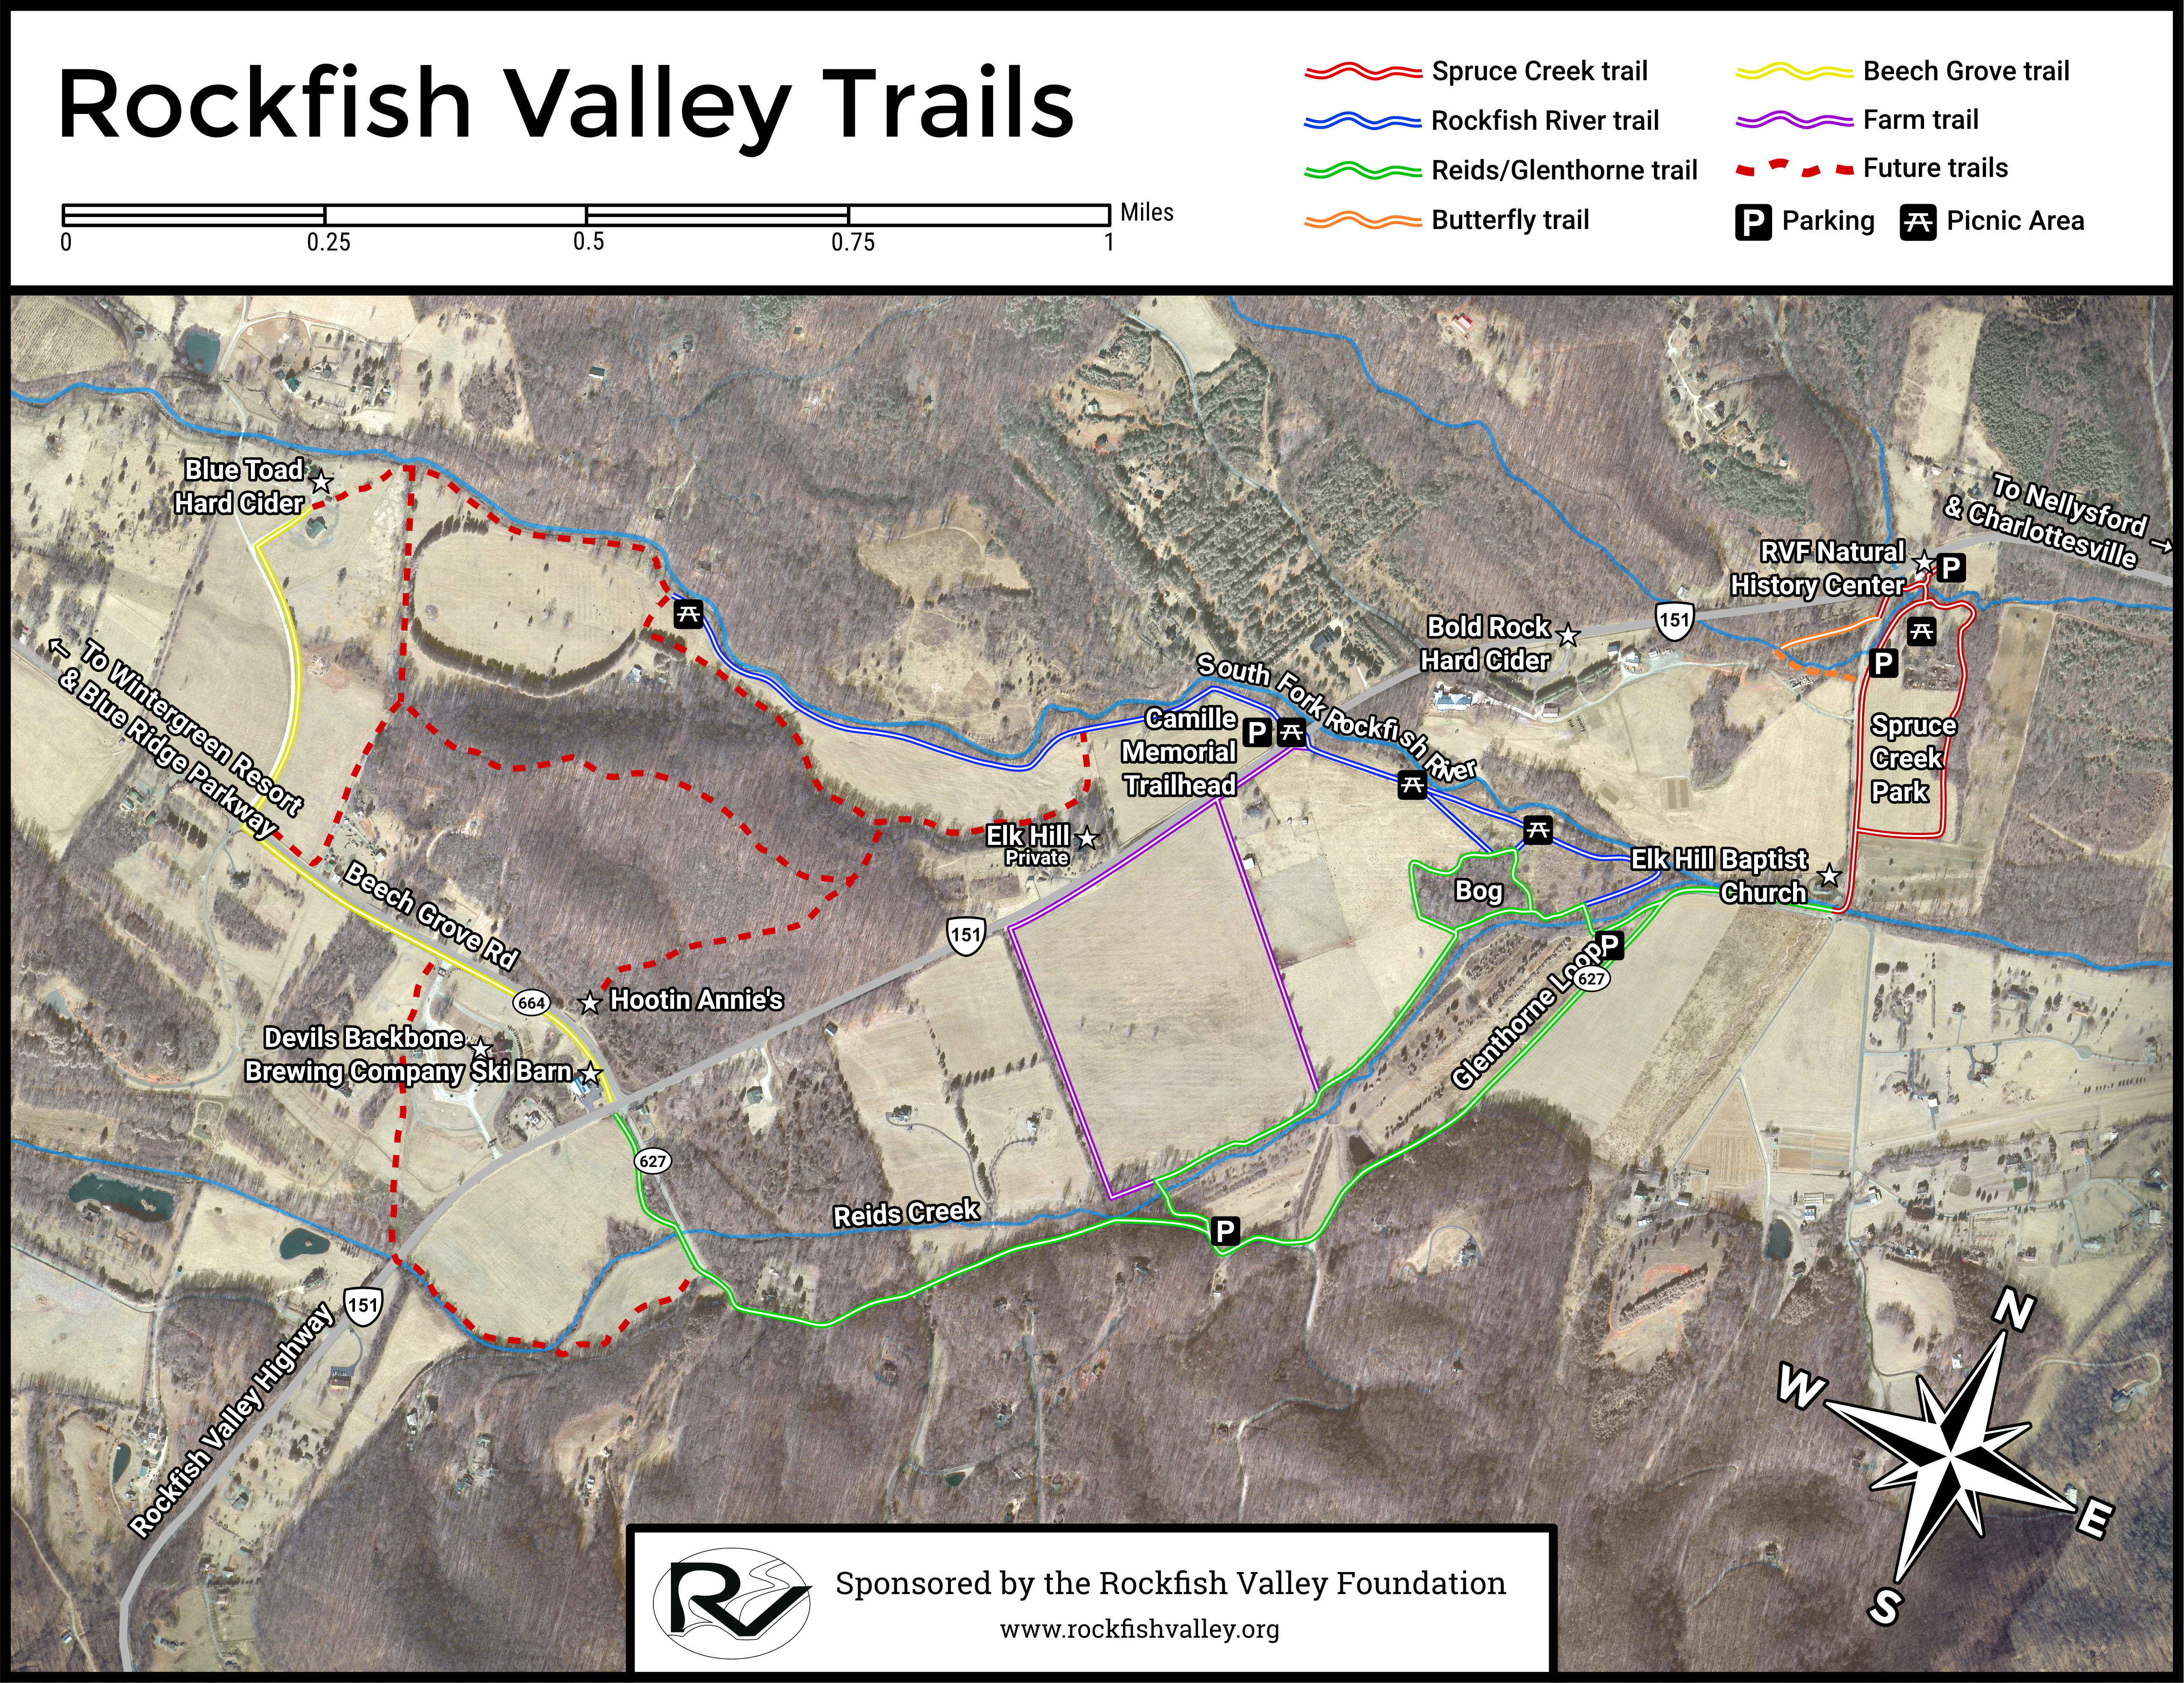 Rockfish Valley Trails map